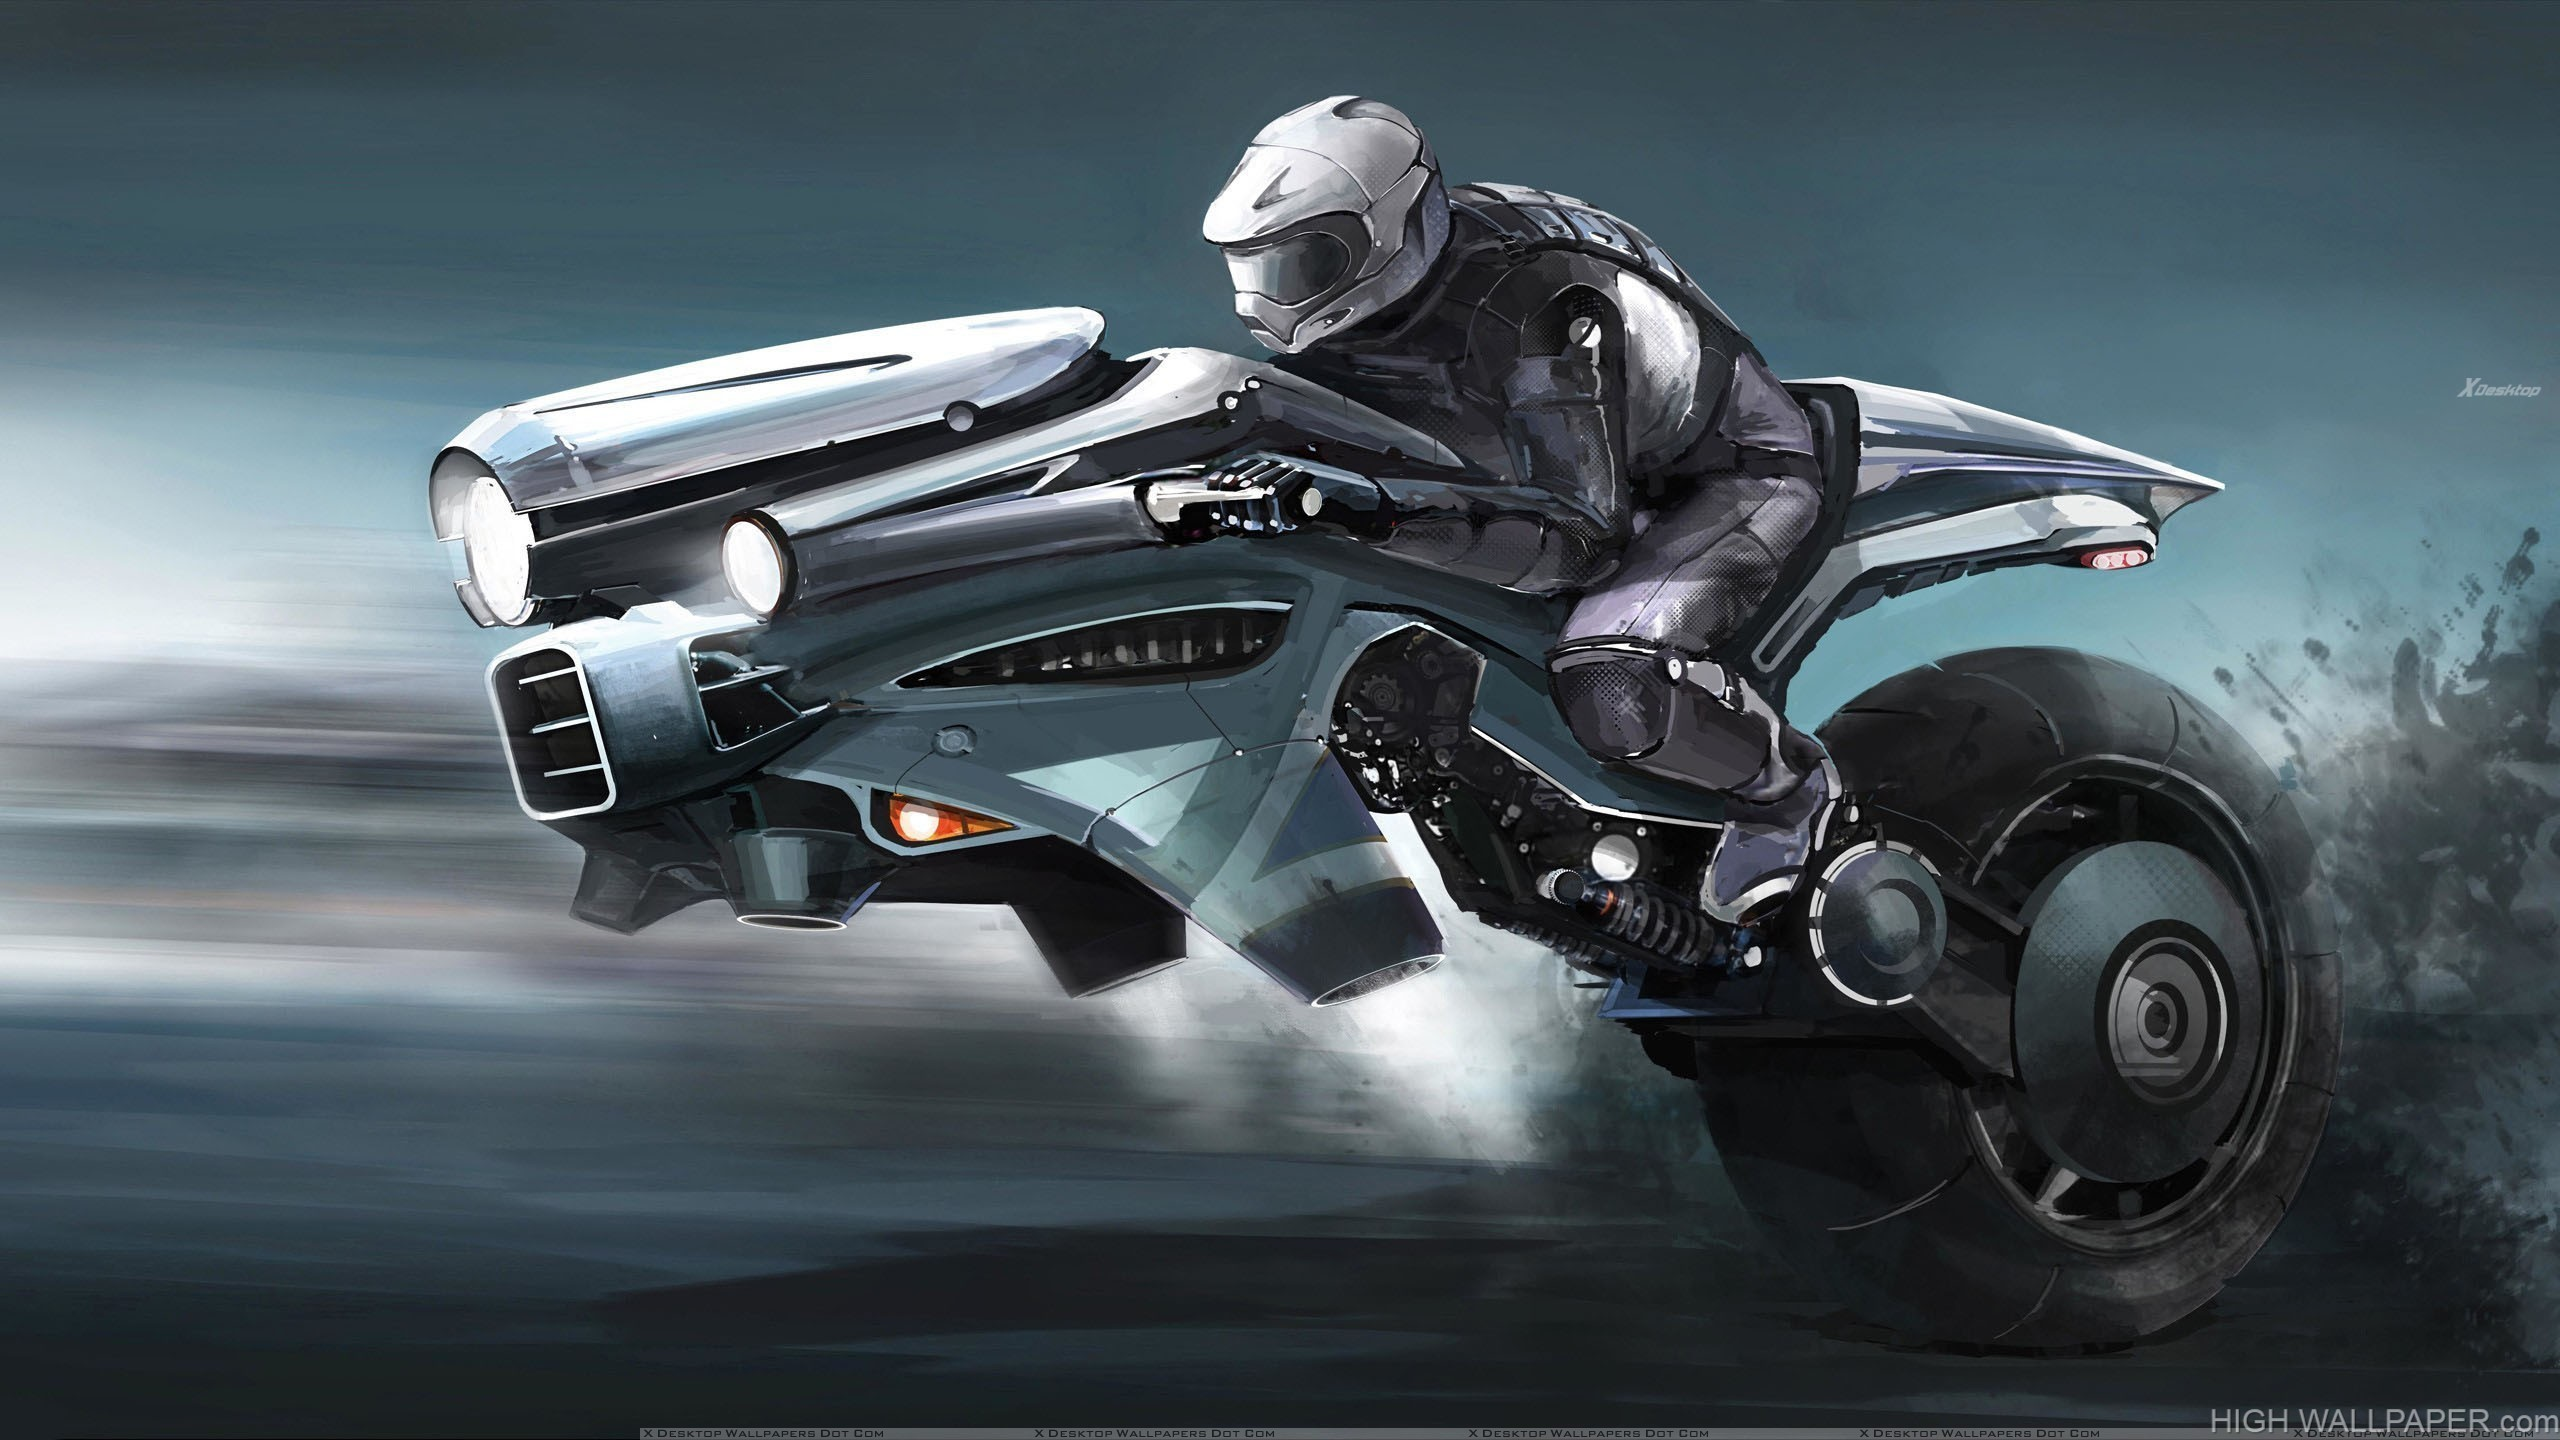 Motorcycle Of The Future Looking Cool